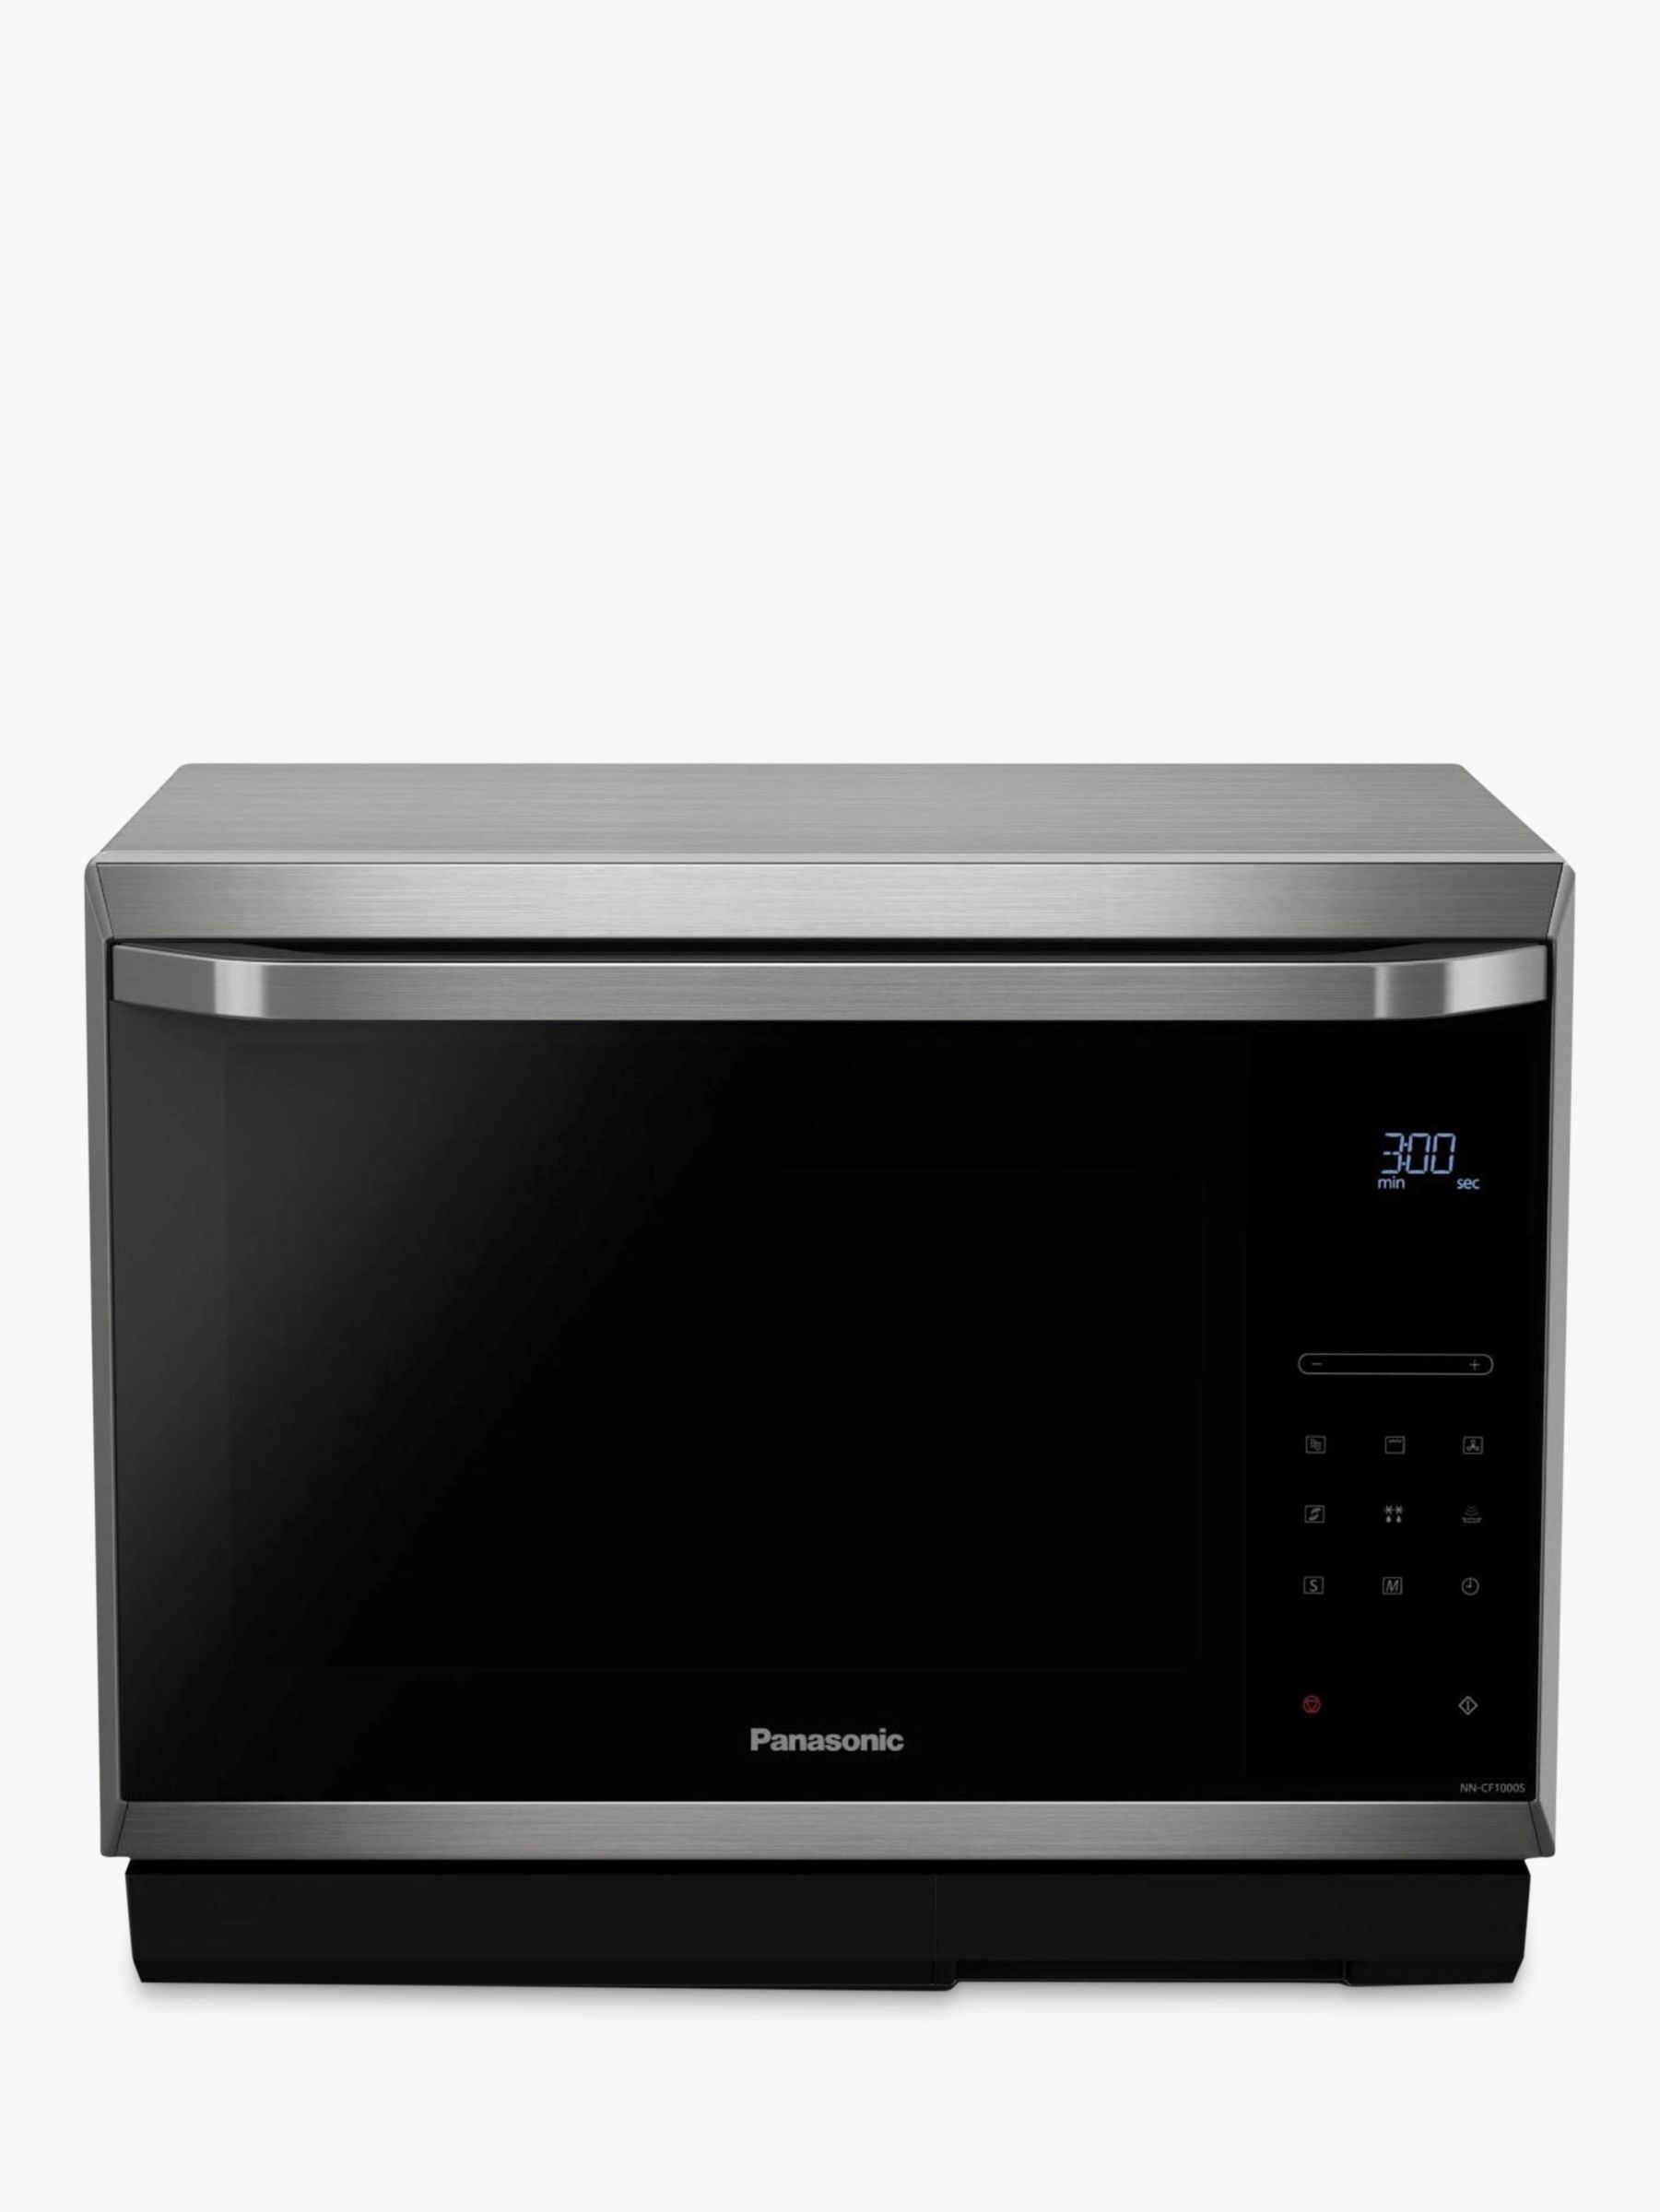 Panasonic Nn Cf873sbpq Combination Microwave Oven Stainless Steel Wiring Devices Philippines At John Lewis Partners